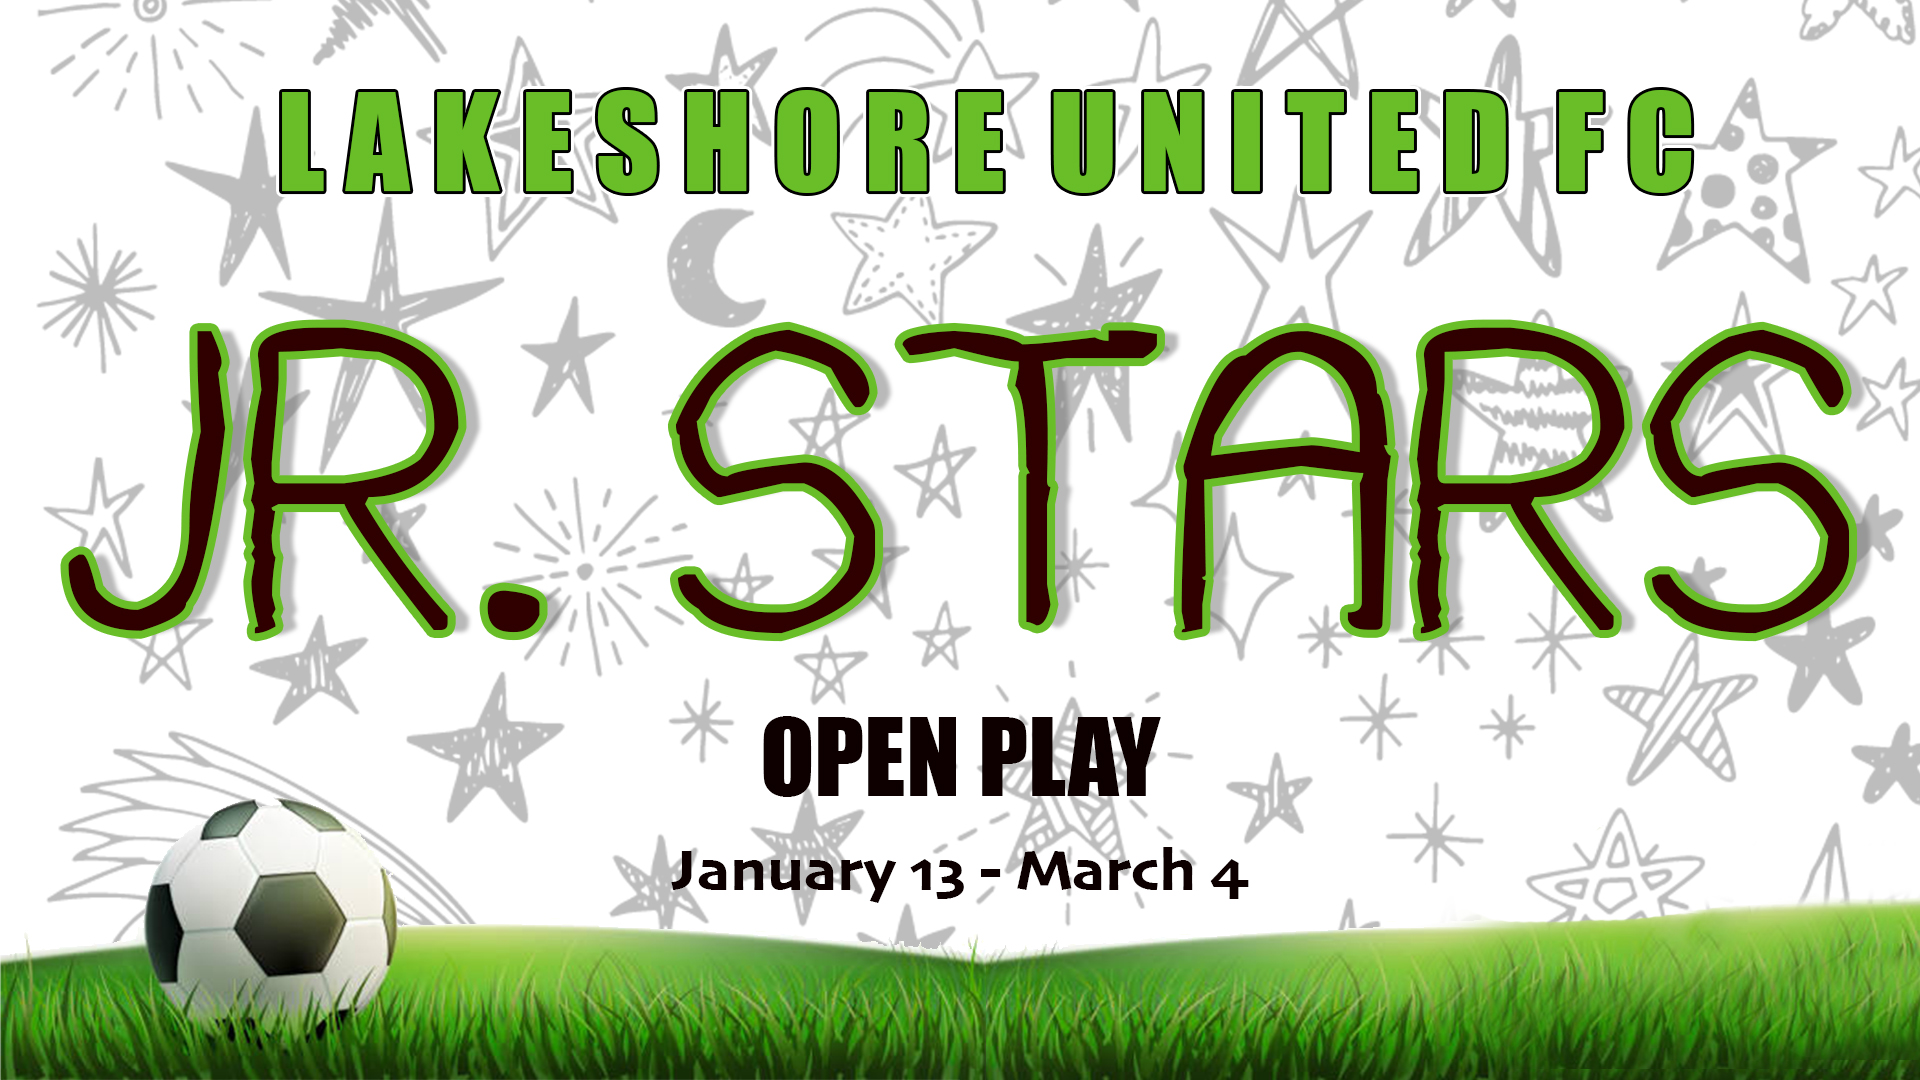 Jr. Stars Open Play Extended Through January